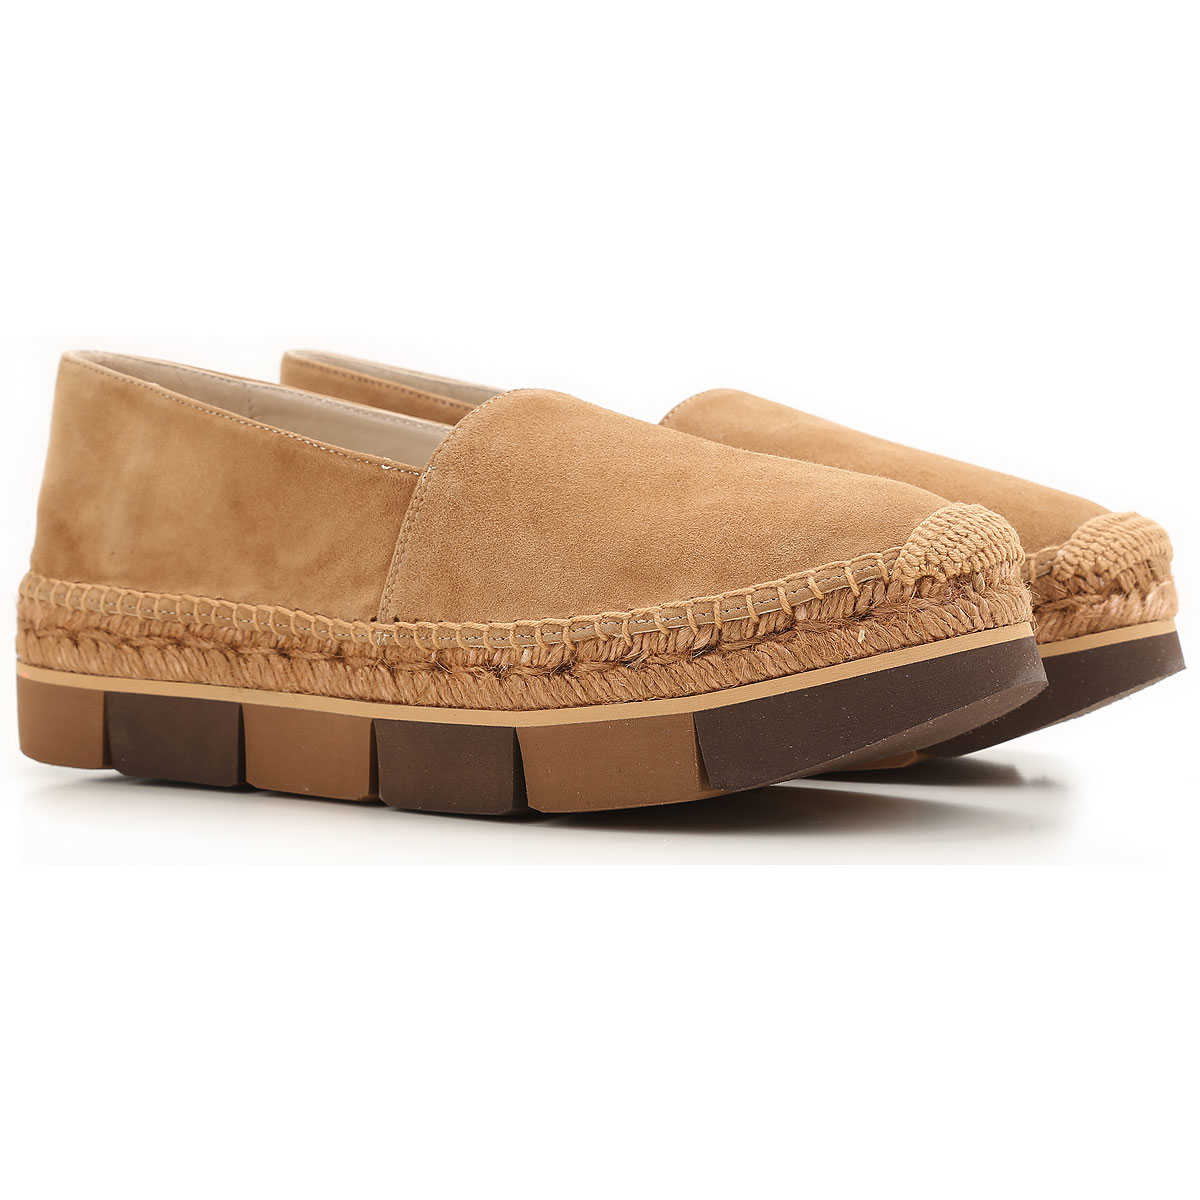 Paloma Barcelo Loafers for Women On Sale in Outlet